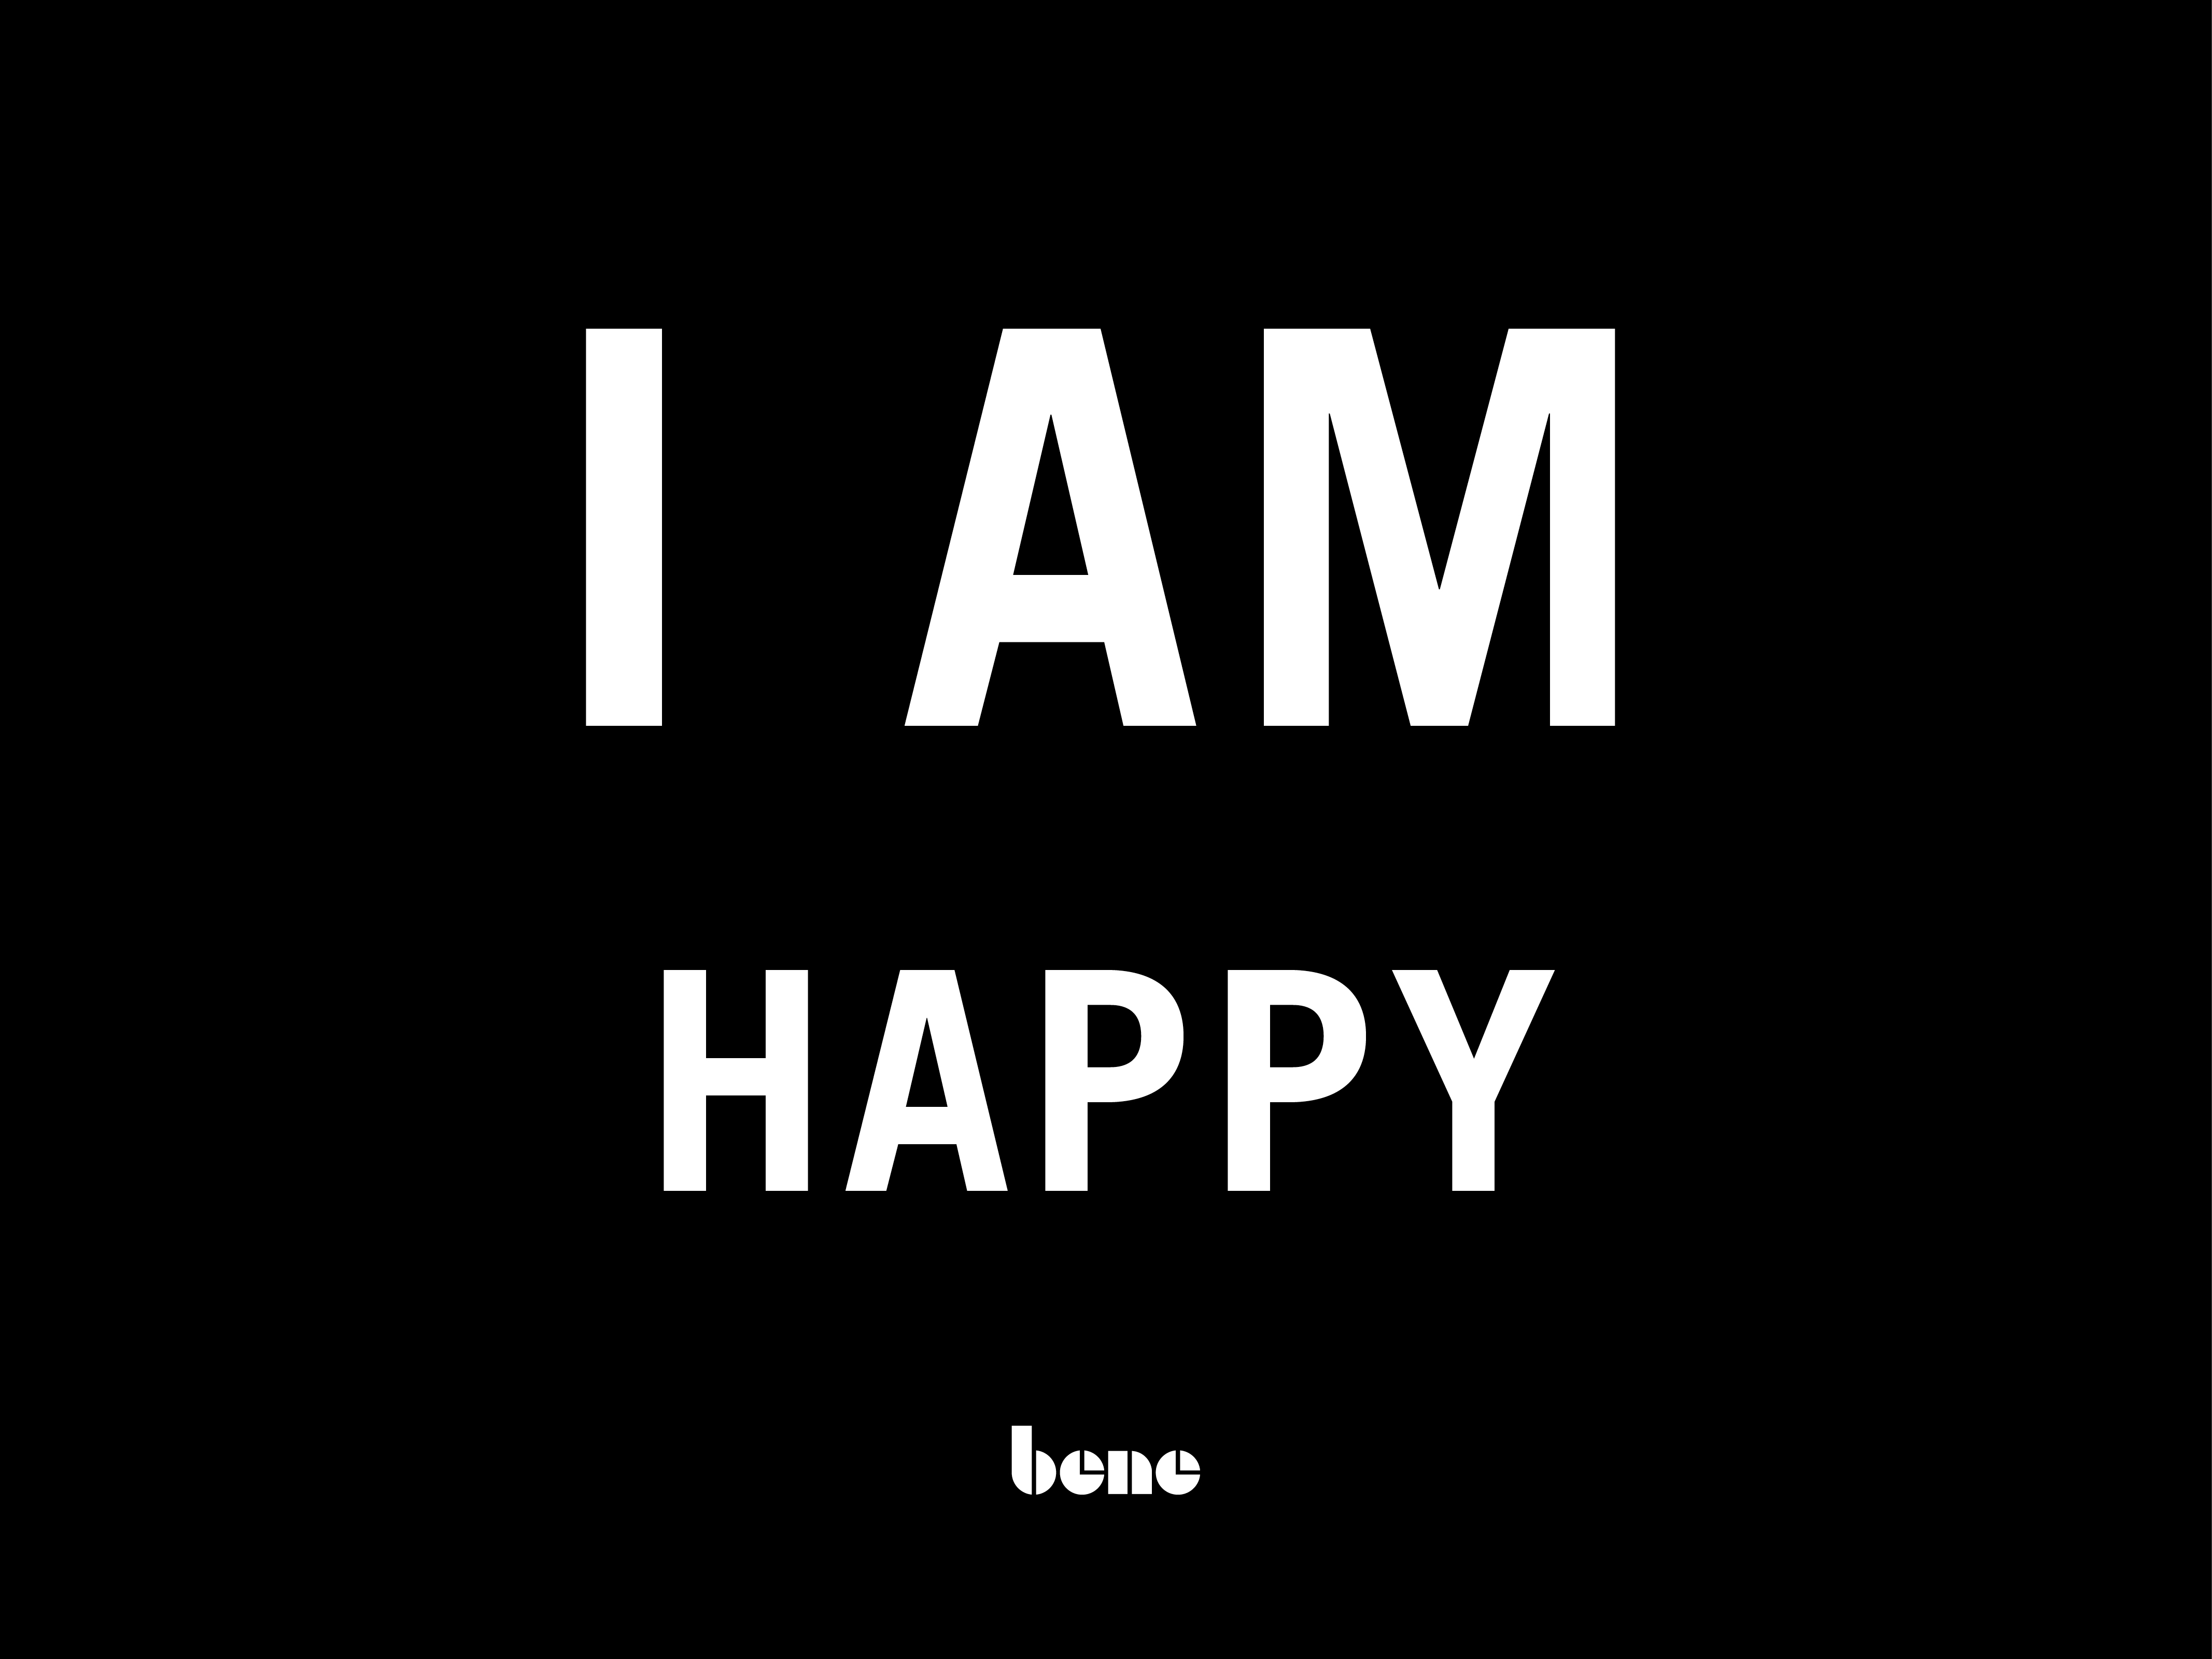 Mobile Wallpaper Quotes On Attitude I Am Bene Wallpaper For Download In Bene